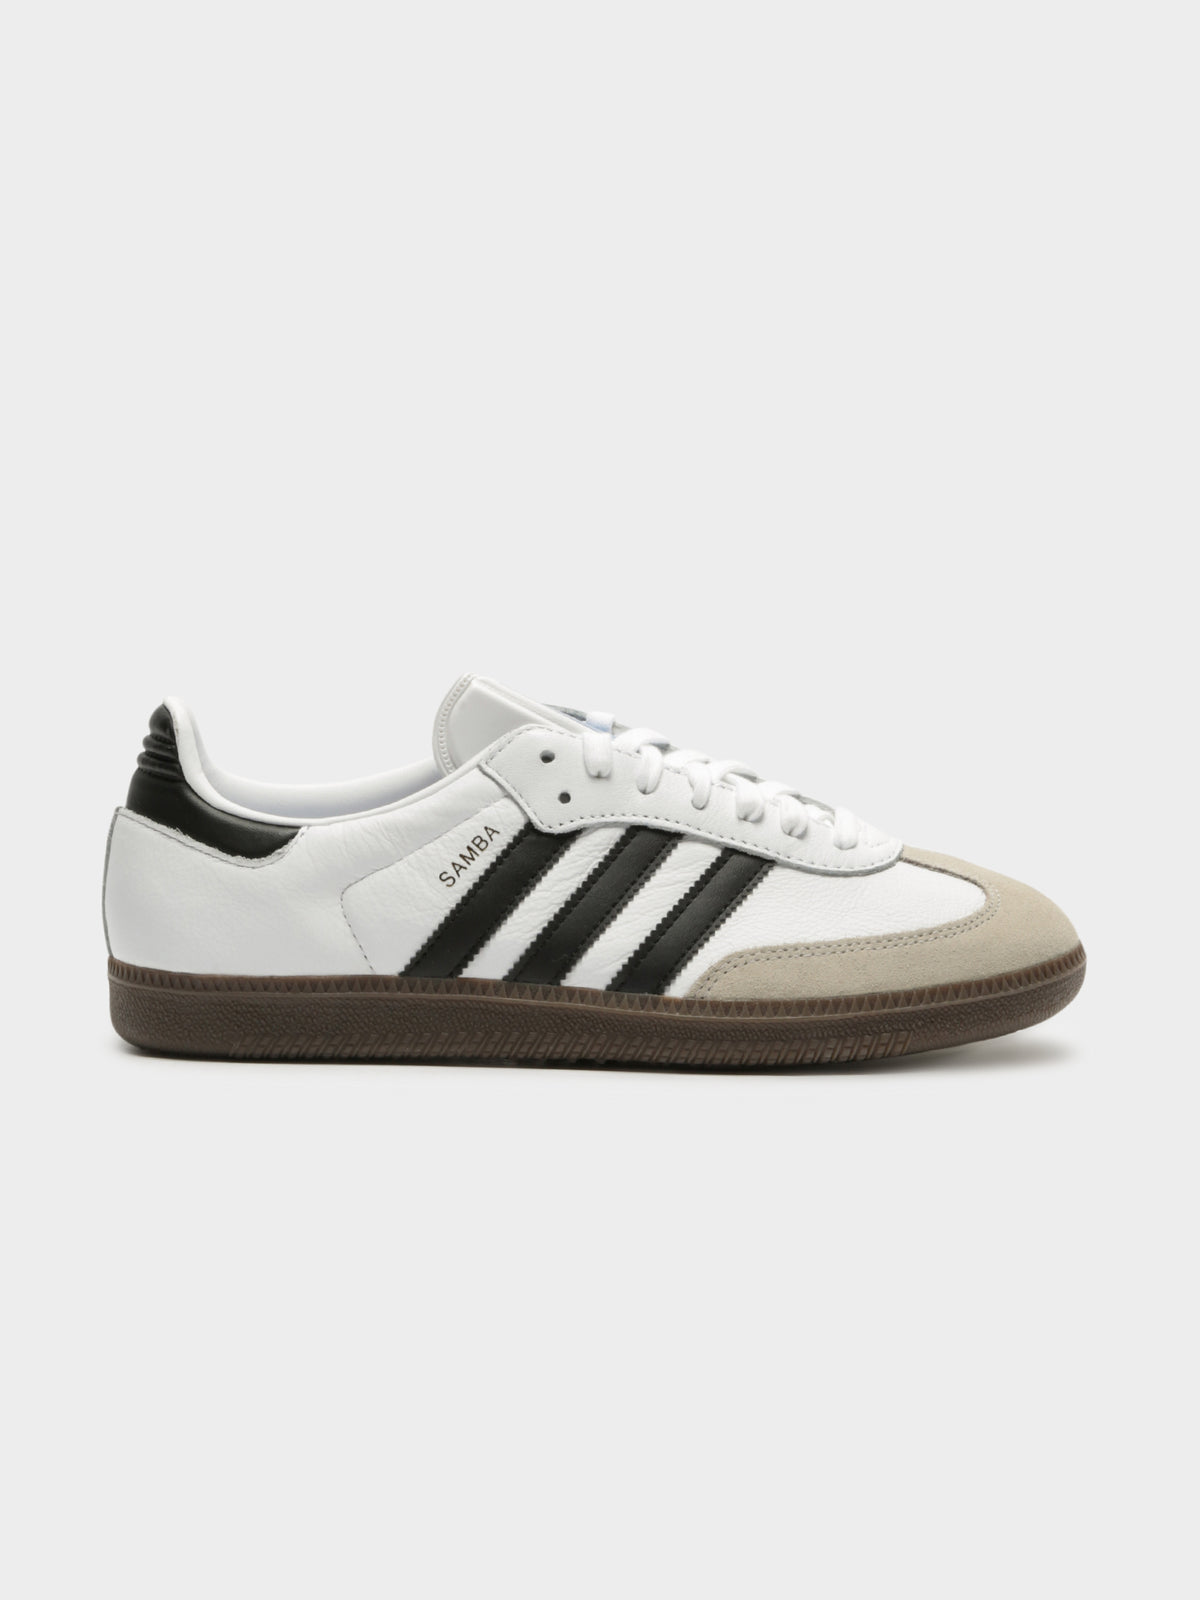 Unisex Samba OG FWR Sneakers in White & Brown Leather